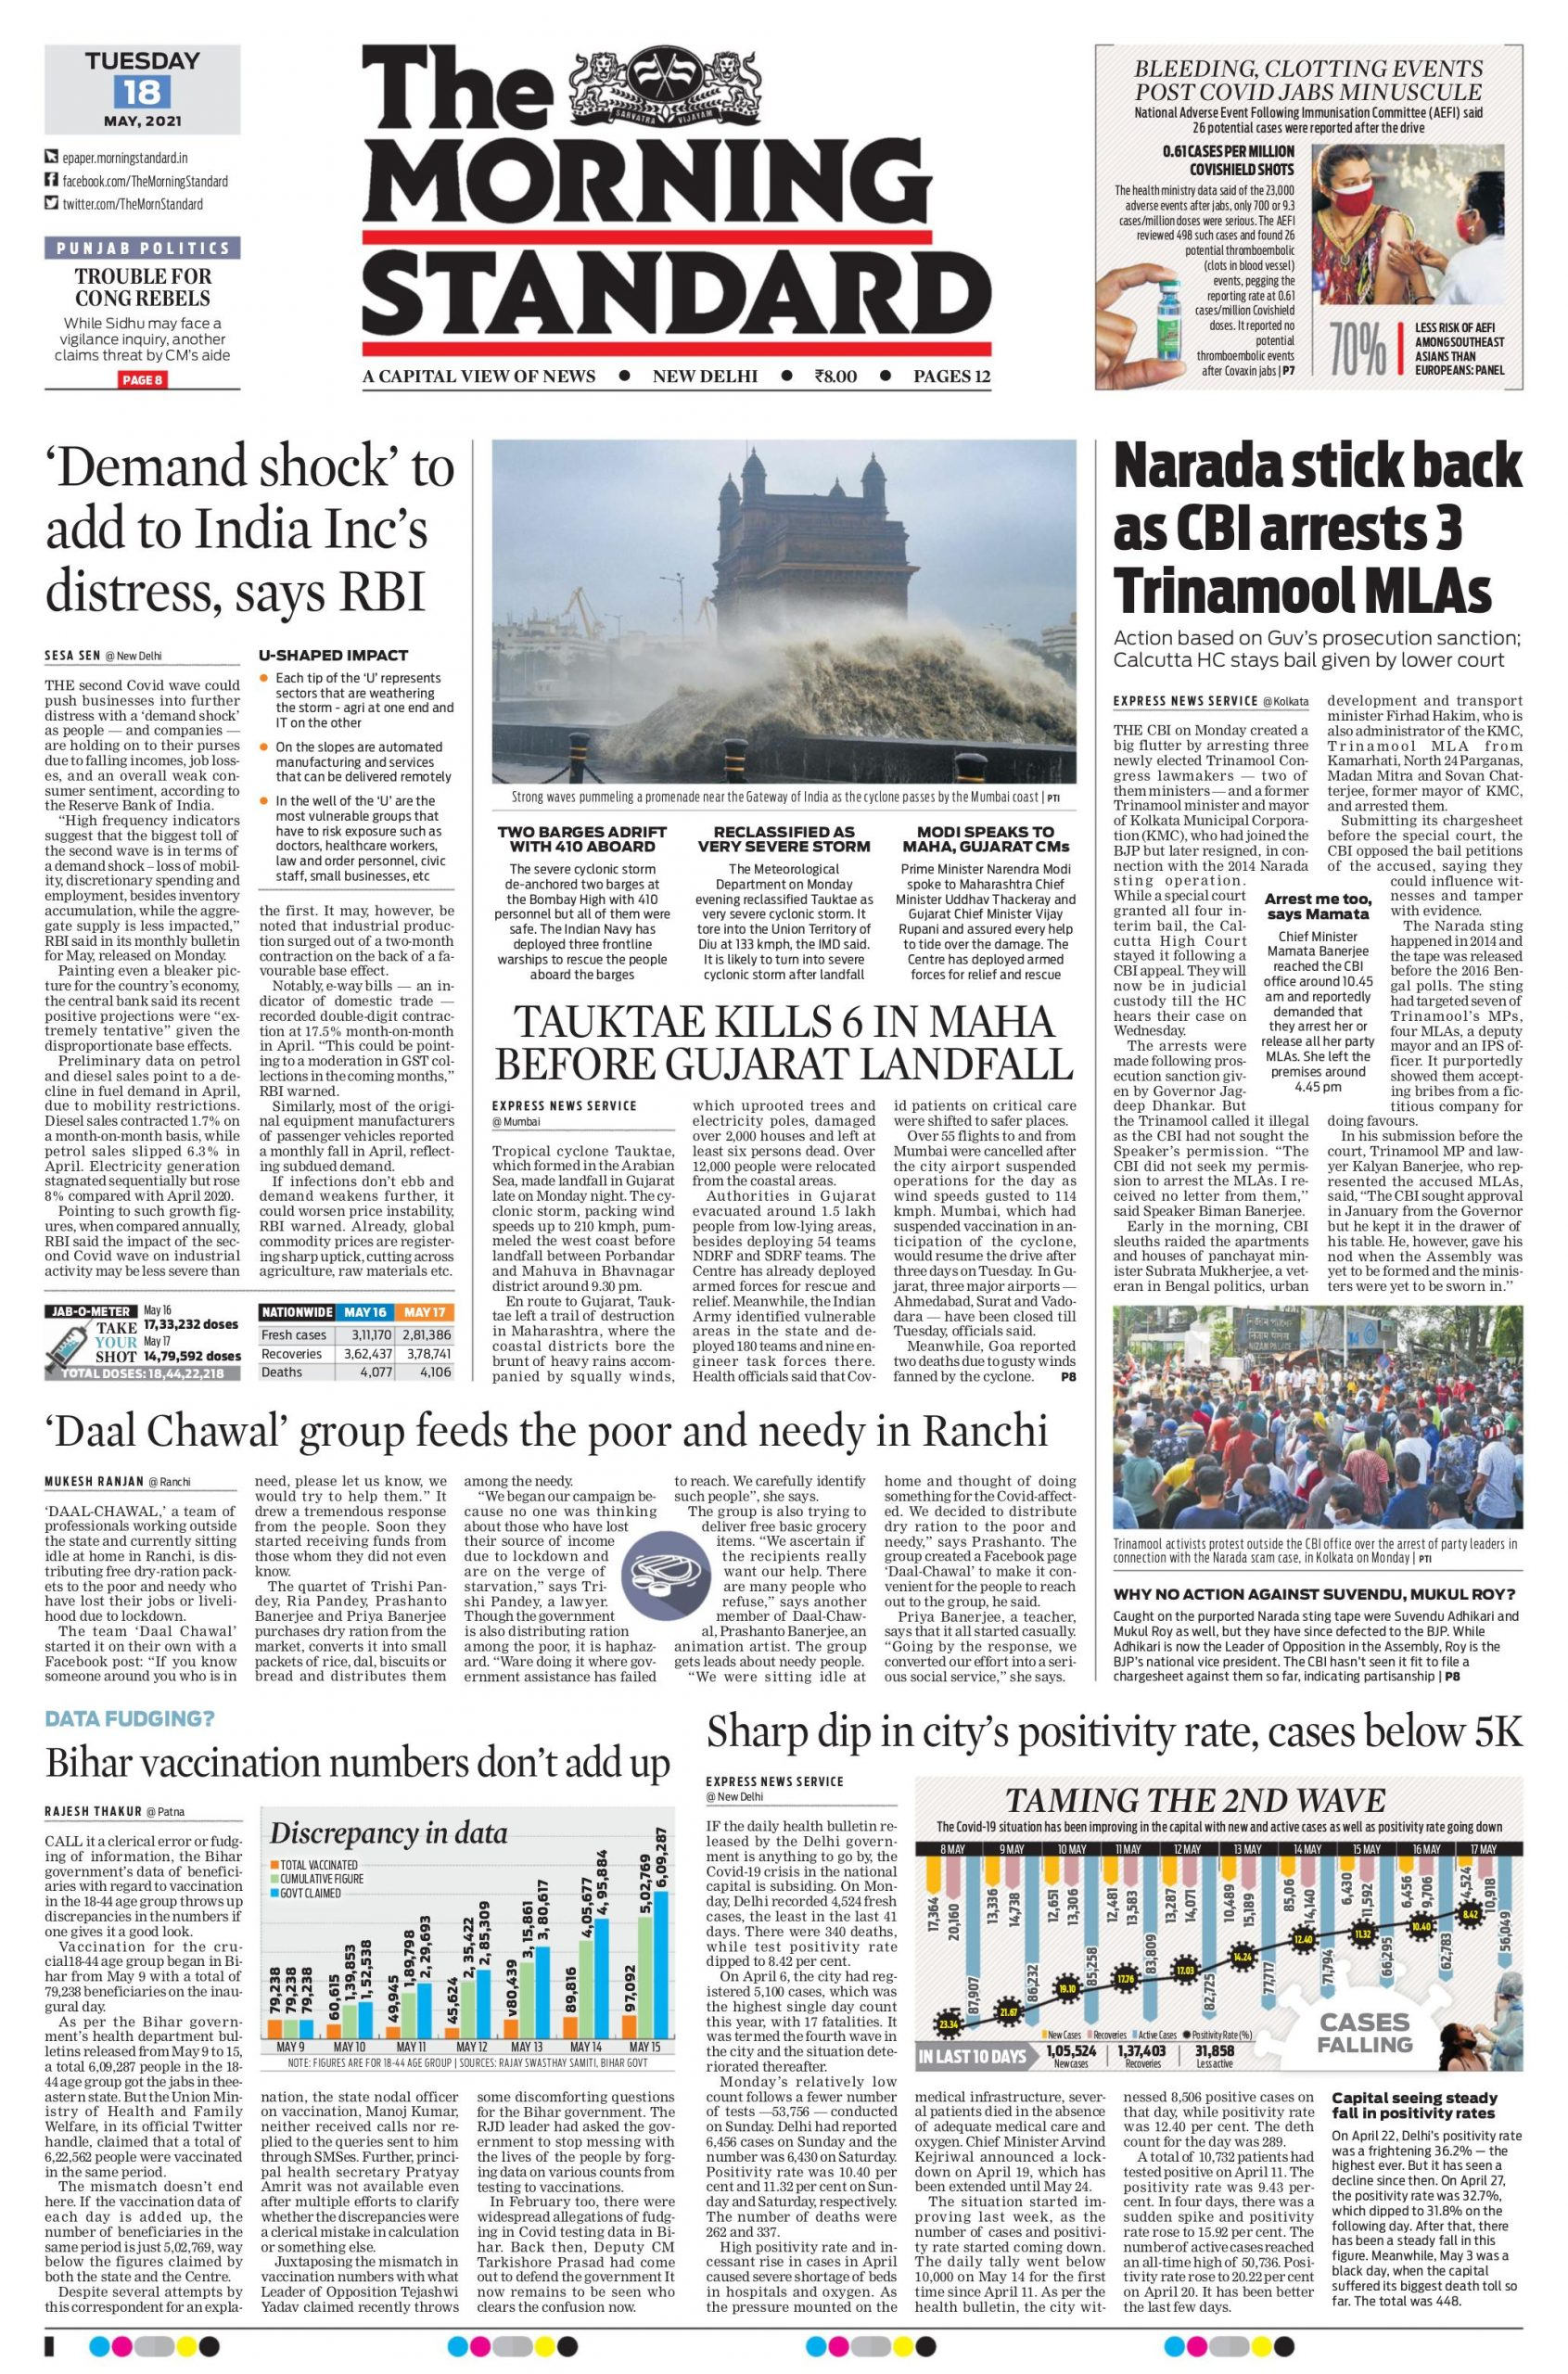 The Morning Standard 18th May 2021